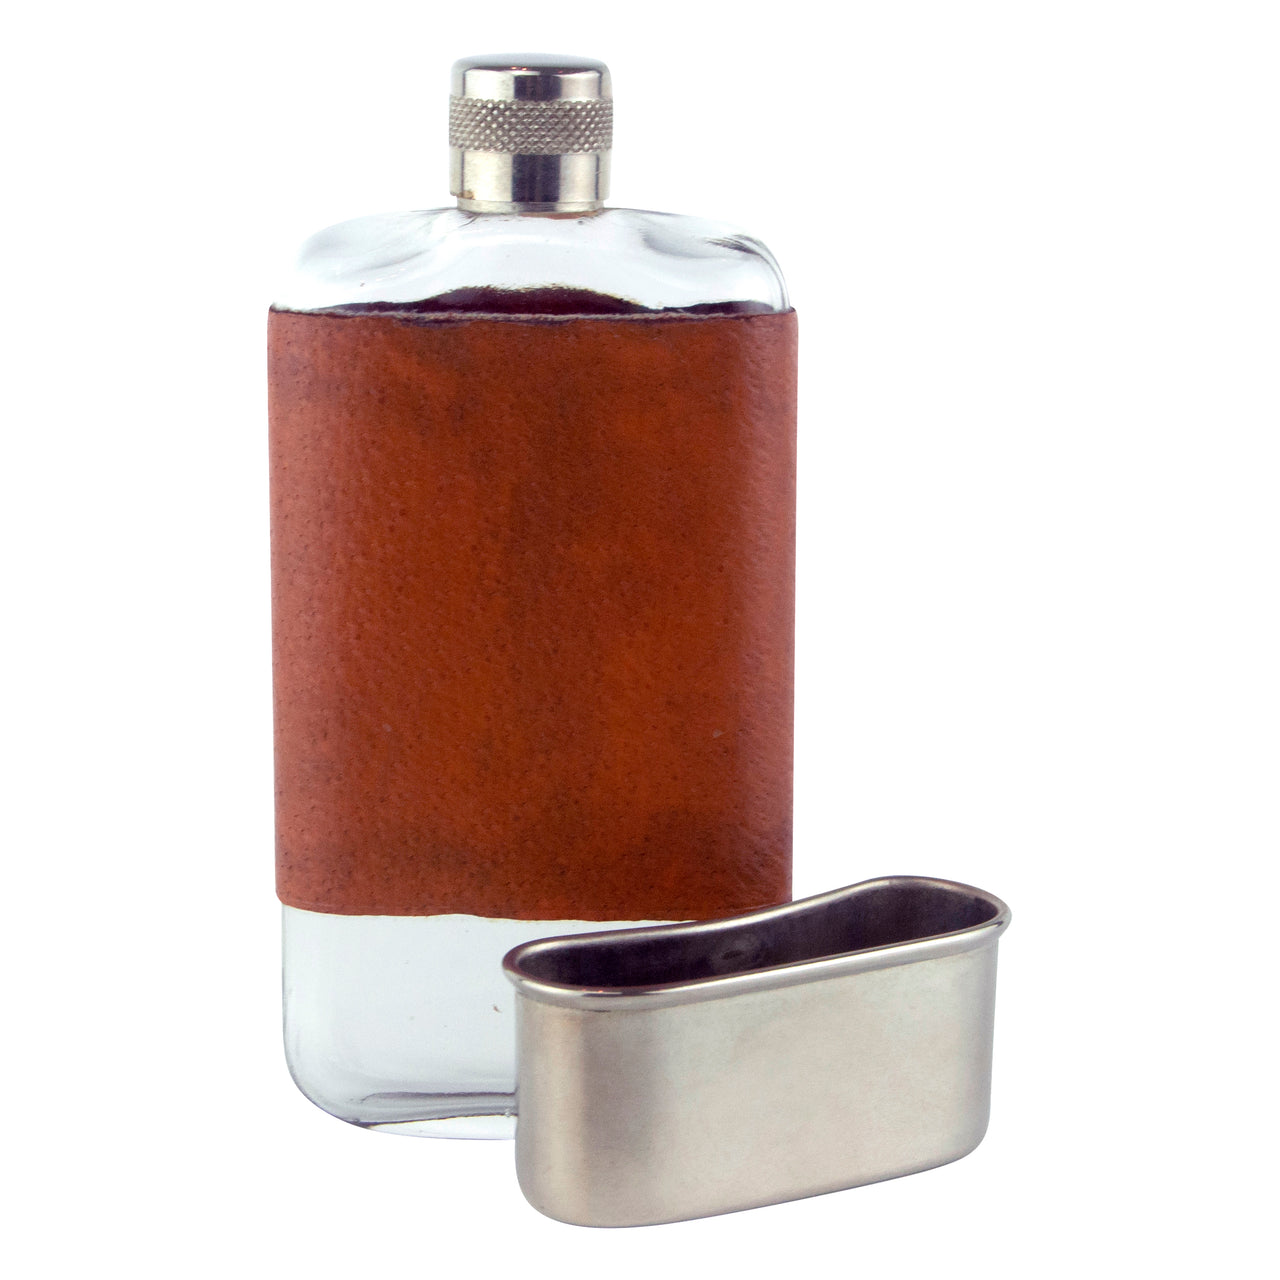 Vintage Leather & Glass Flask With Removable Cup | The Hour